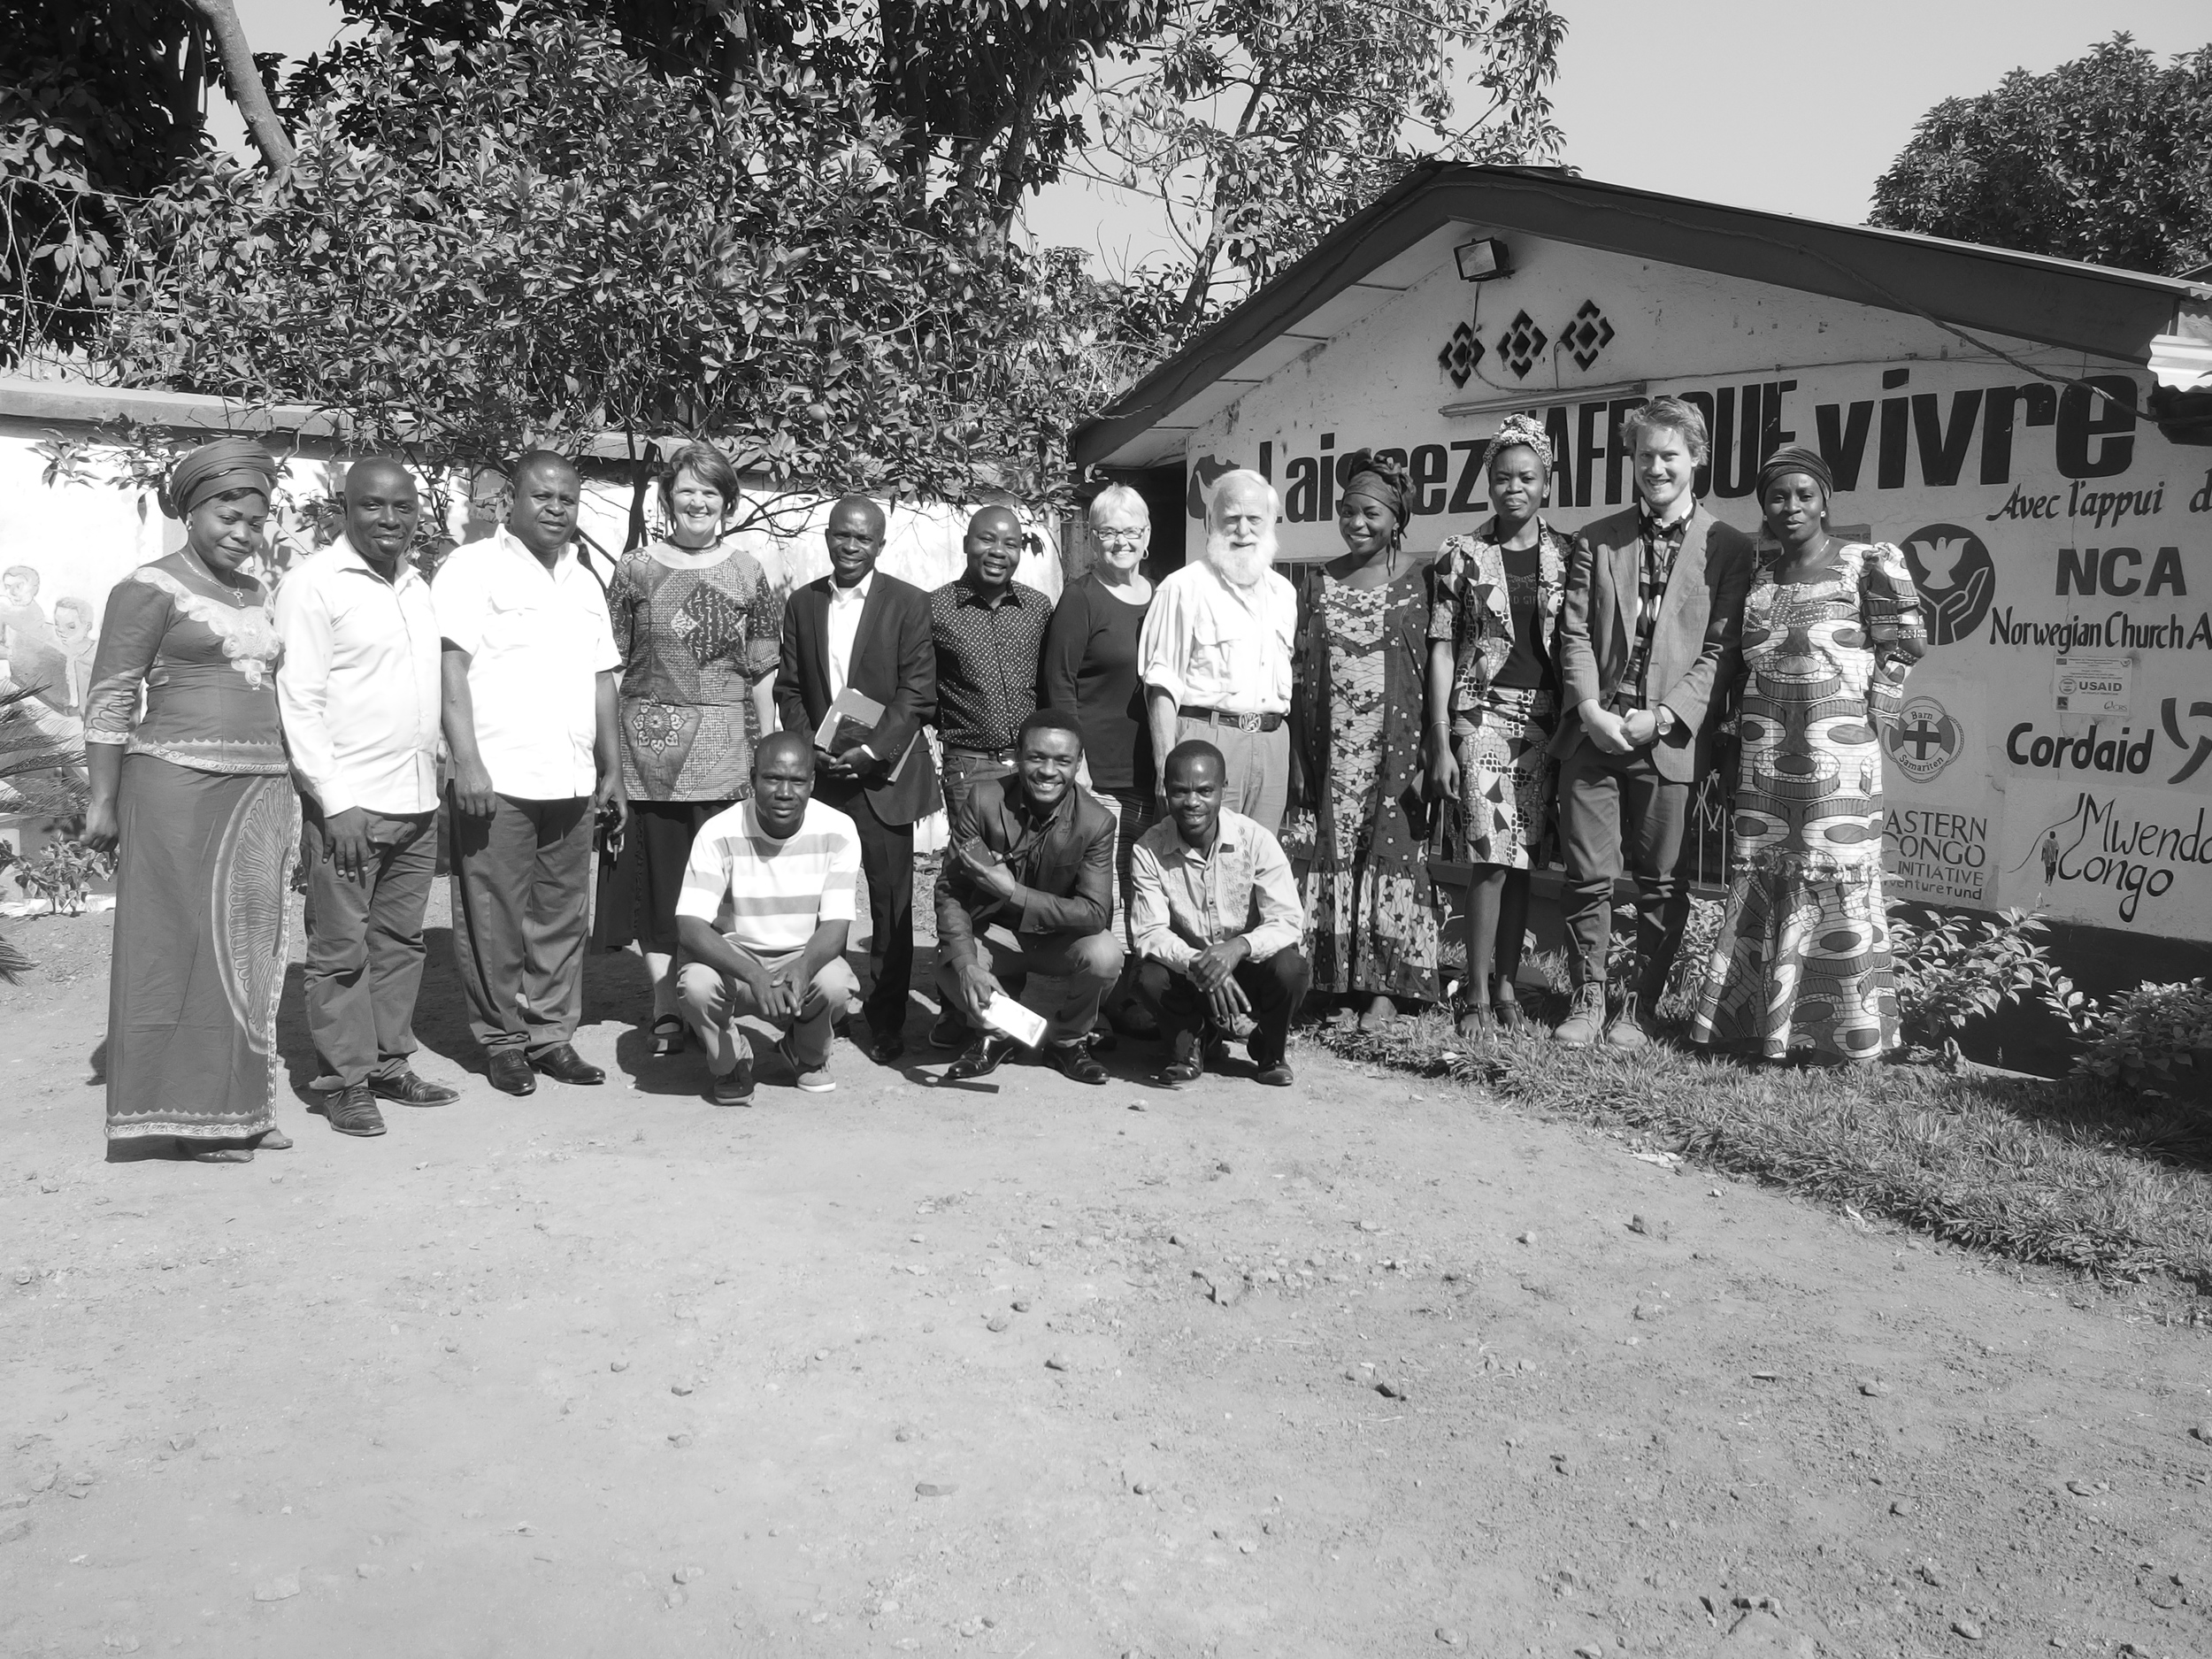 Our group with the Leaders of LAV